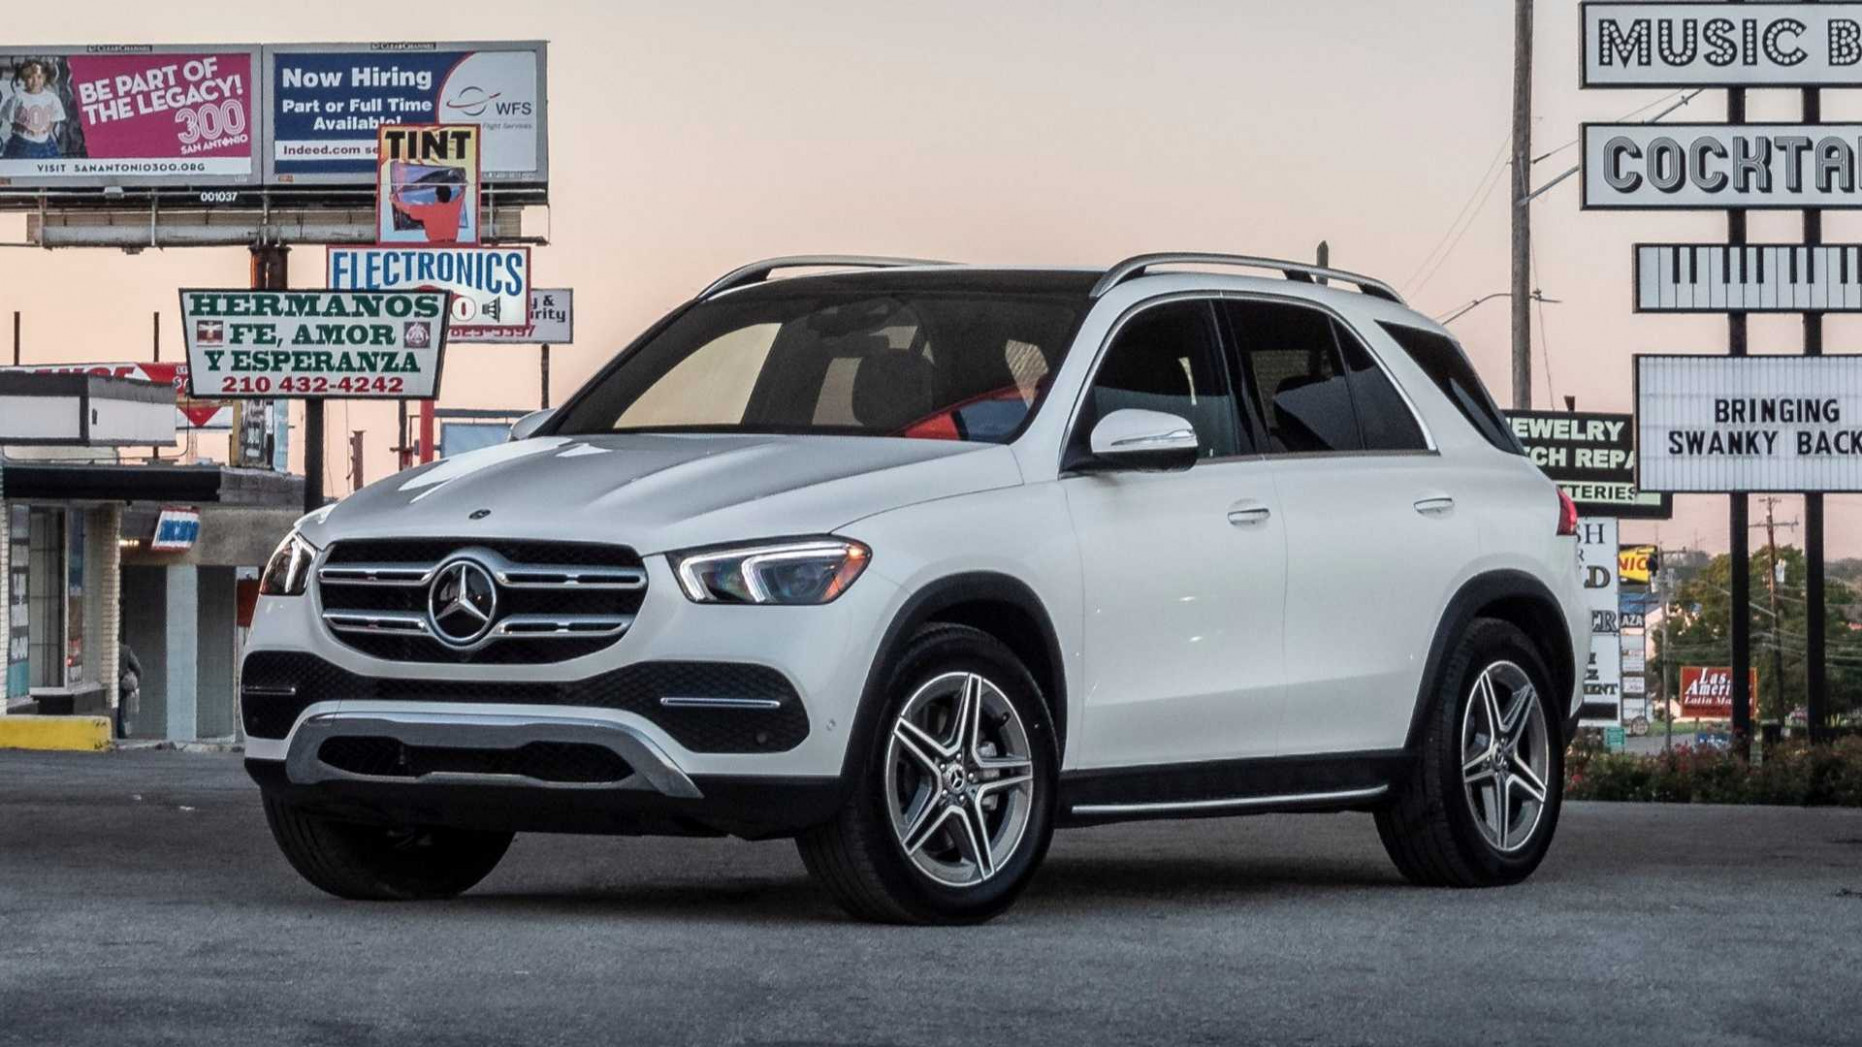 12 Mercedes-Benz GLE-Class First Drive: A Ph.D